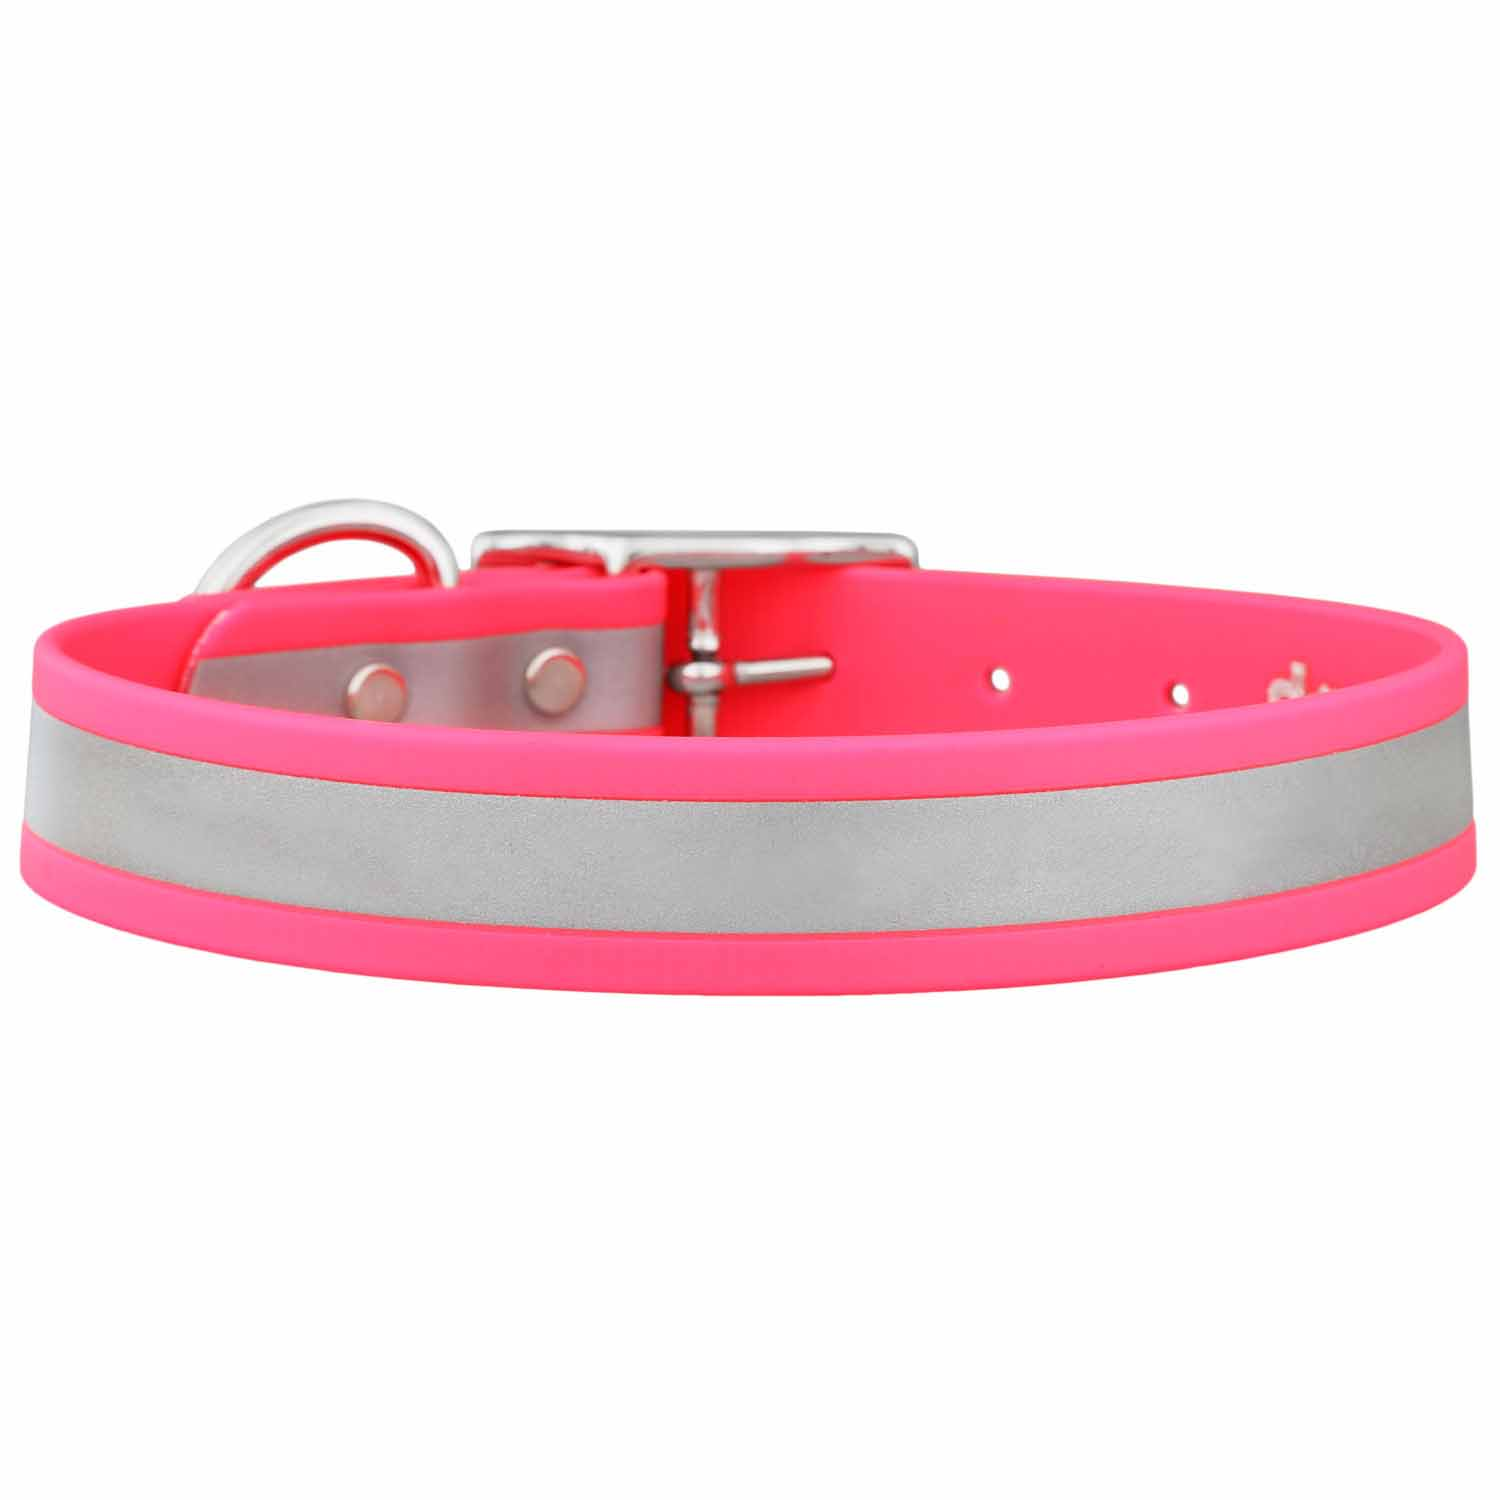 Reflective Waterproof Dog Collar Pink